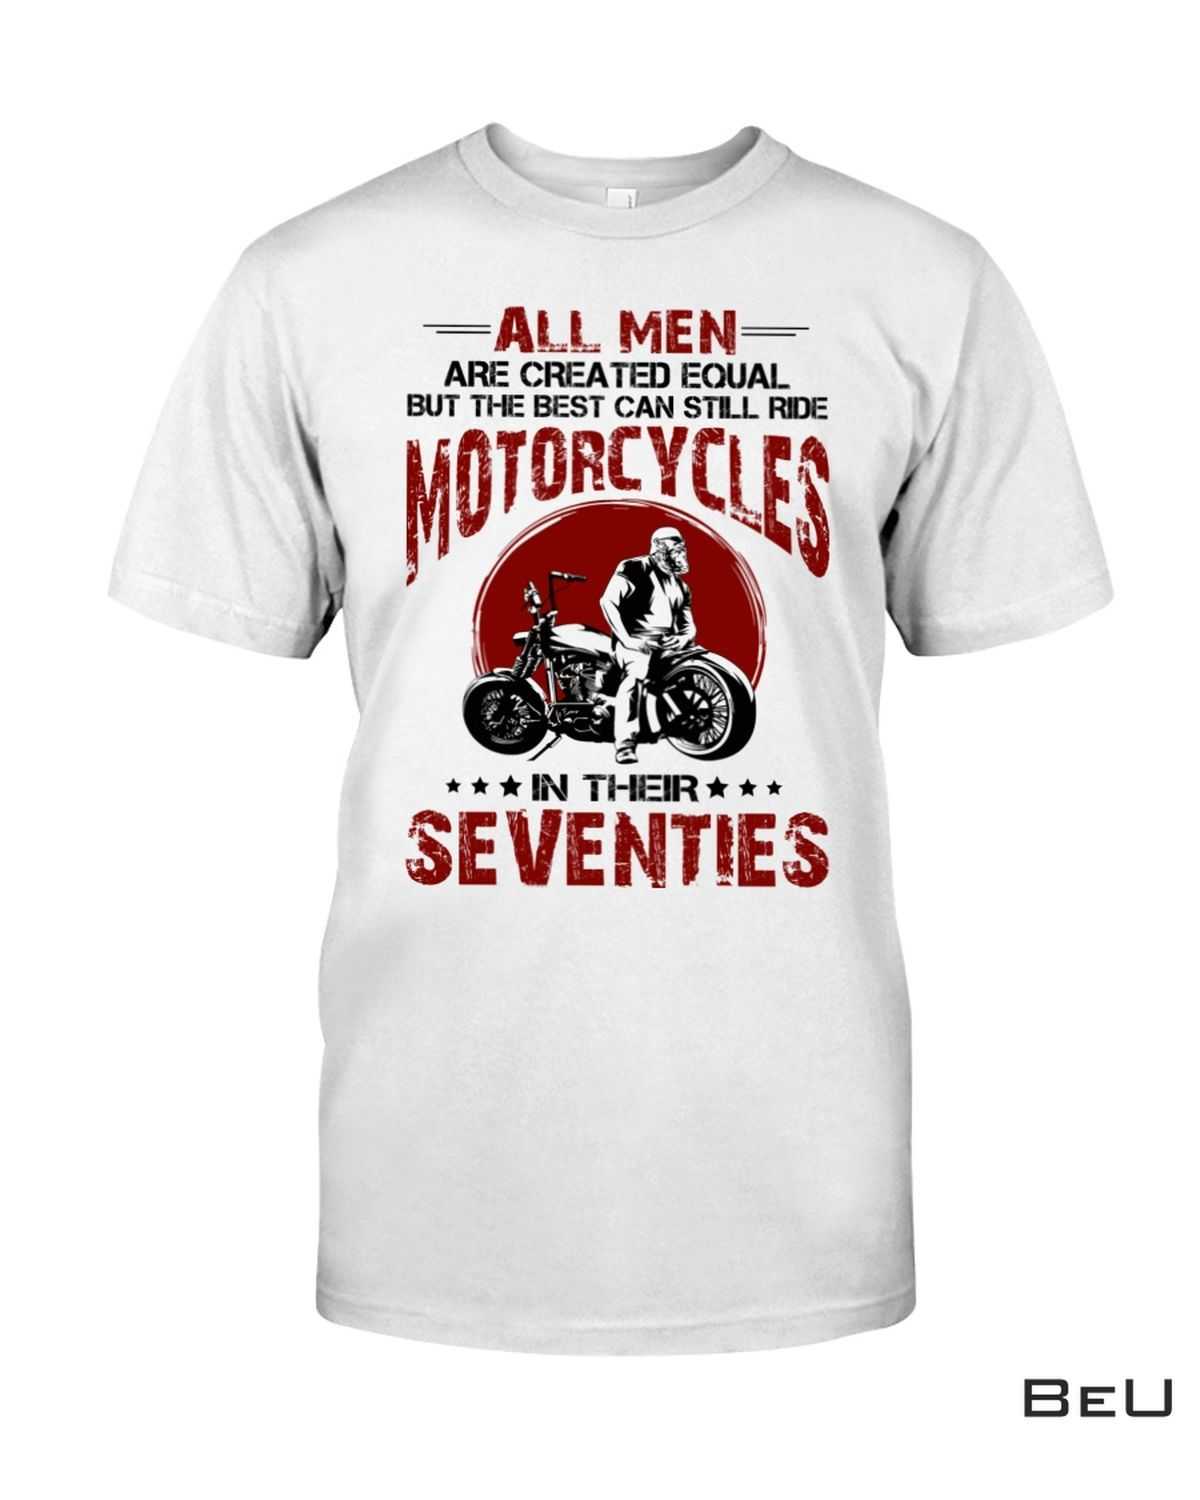 Sale Off All Men Are Created Equal But The Best Can Still Ride Motorcycles In Their Seventies Shirt, hoodie, tank top